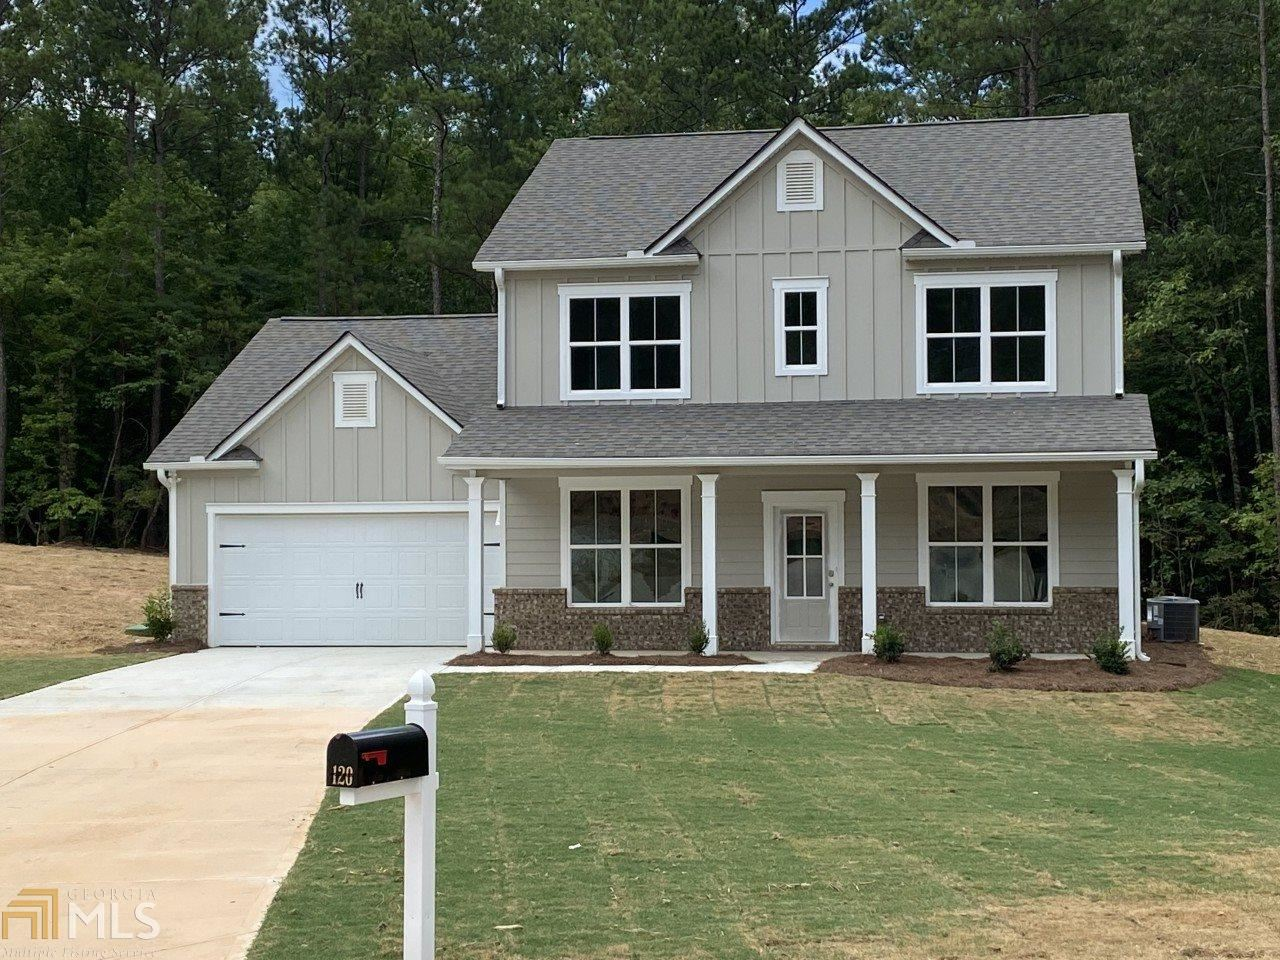 120 Channing Dr, Covington, GA 30016 - #: 8789410